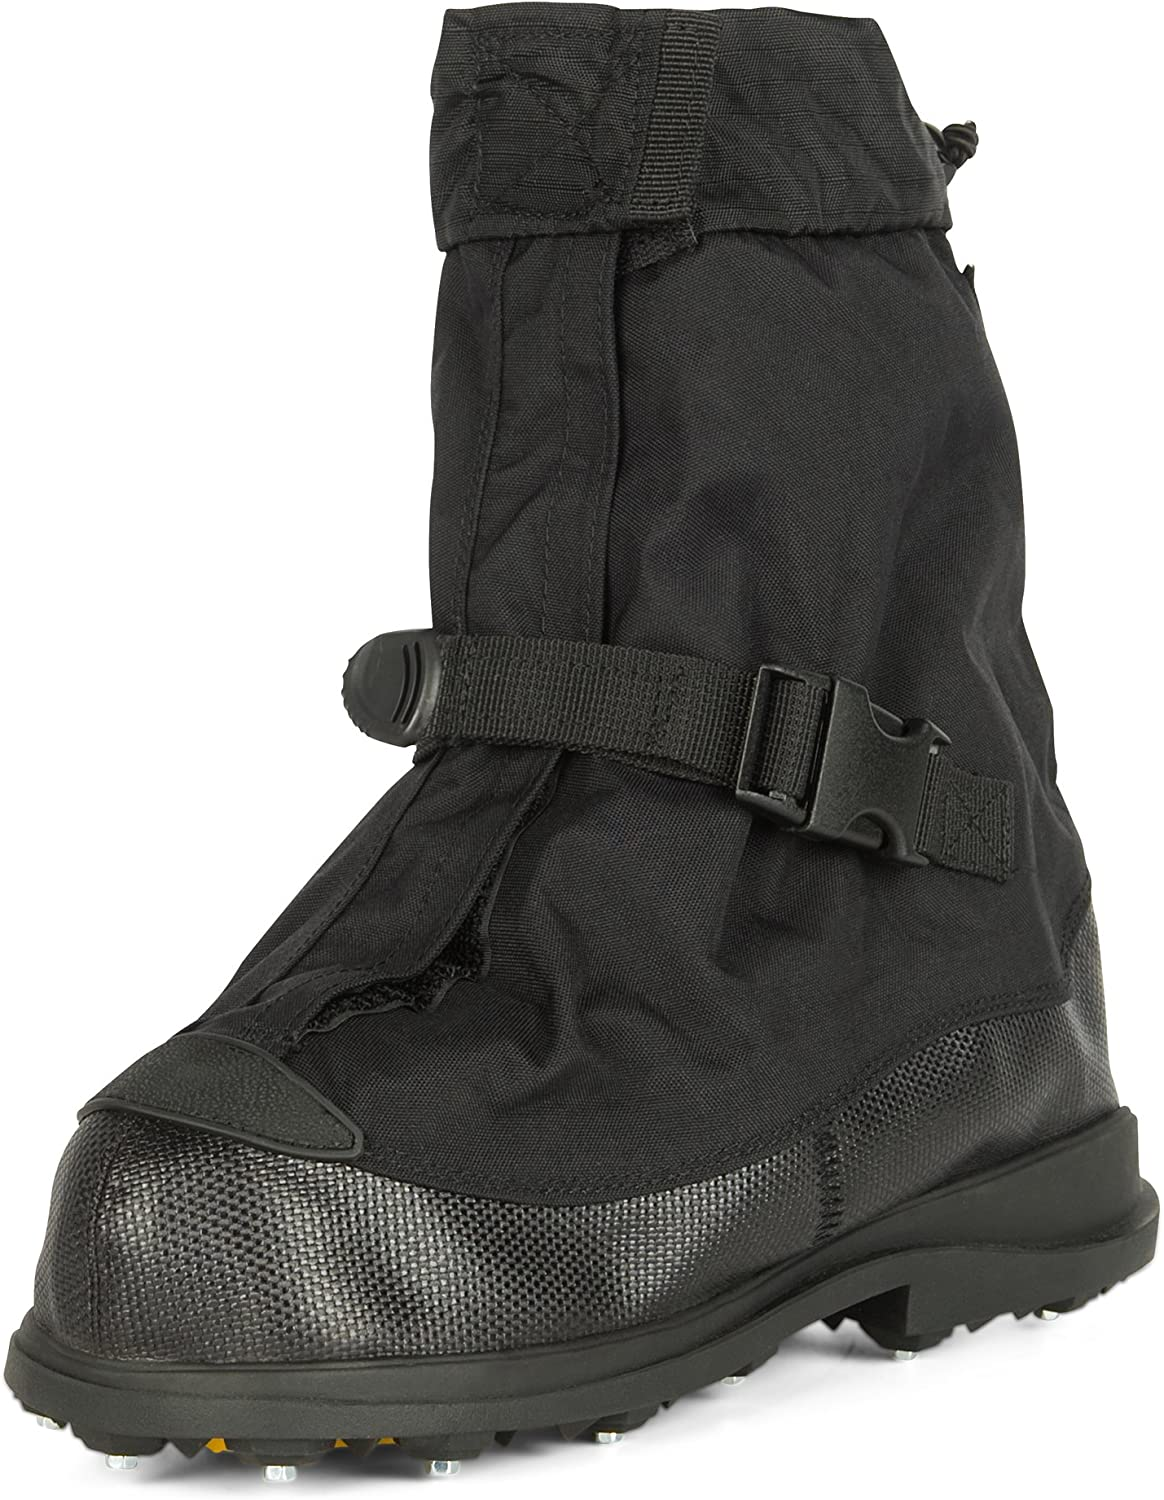 NEOS VNS1HEEL-BLK-S 11  Voyager with Heel & Stabilizer Outsole, Black